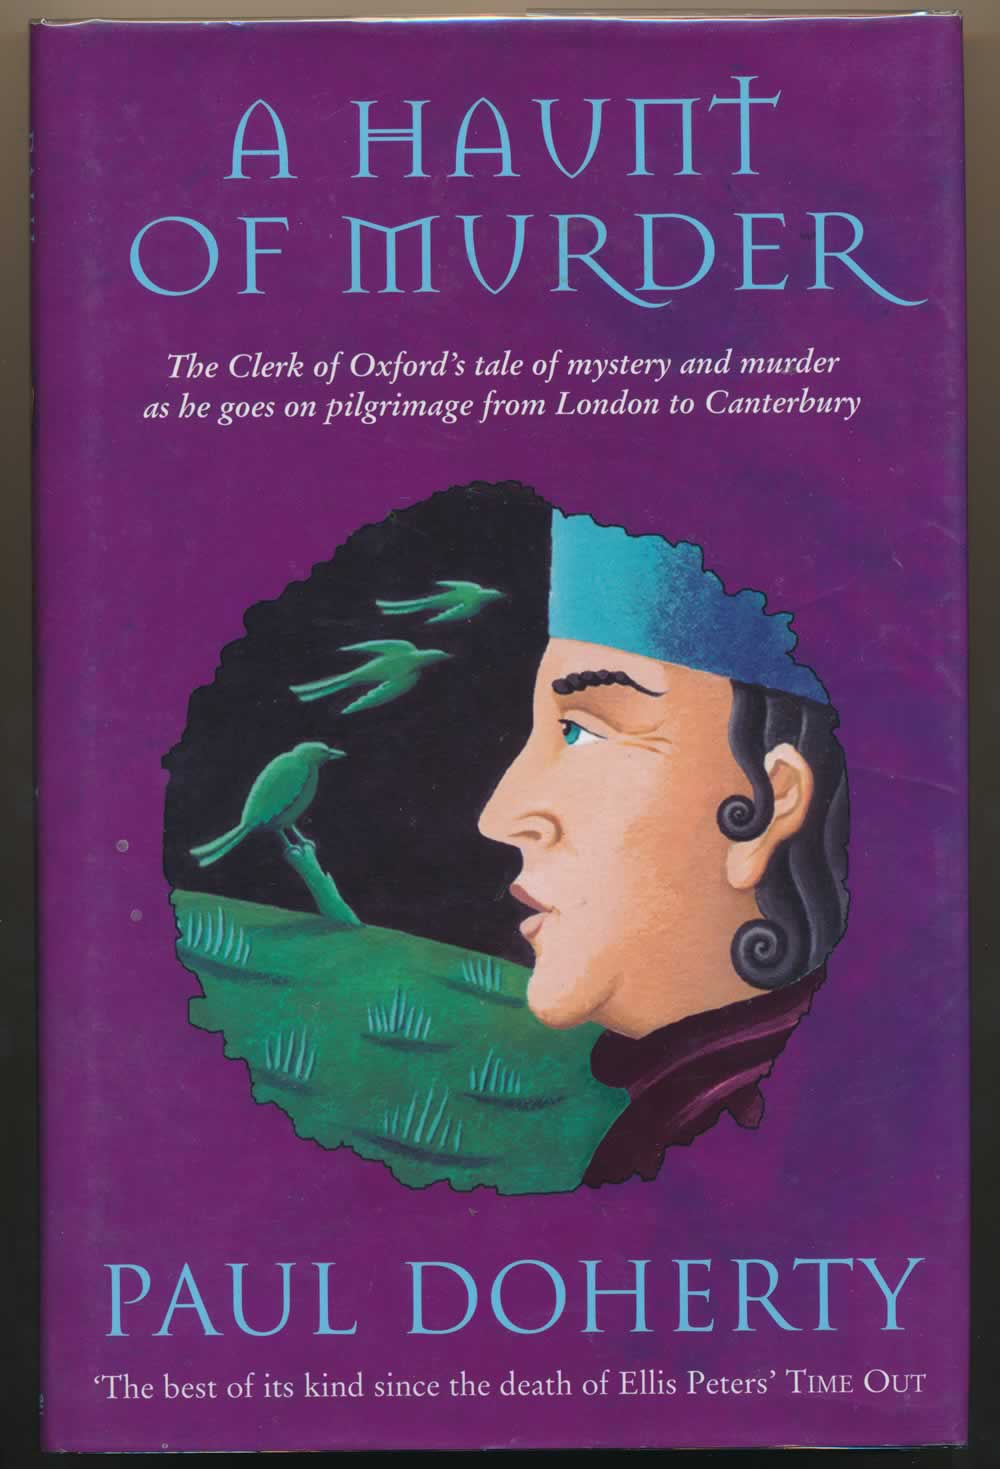 A haunt of murder : the Clerk of Oxford's tale of mystery and murder as he goes on pilgrimage from London to Canterbury